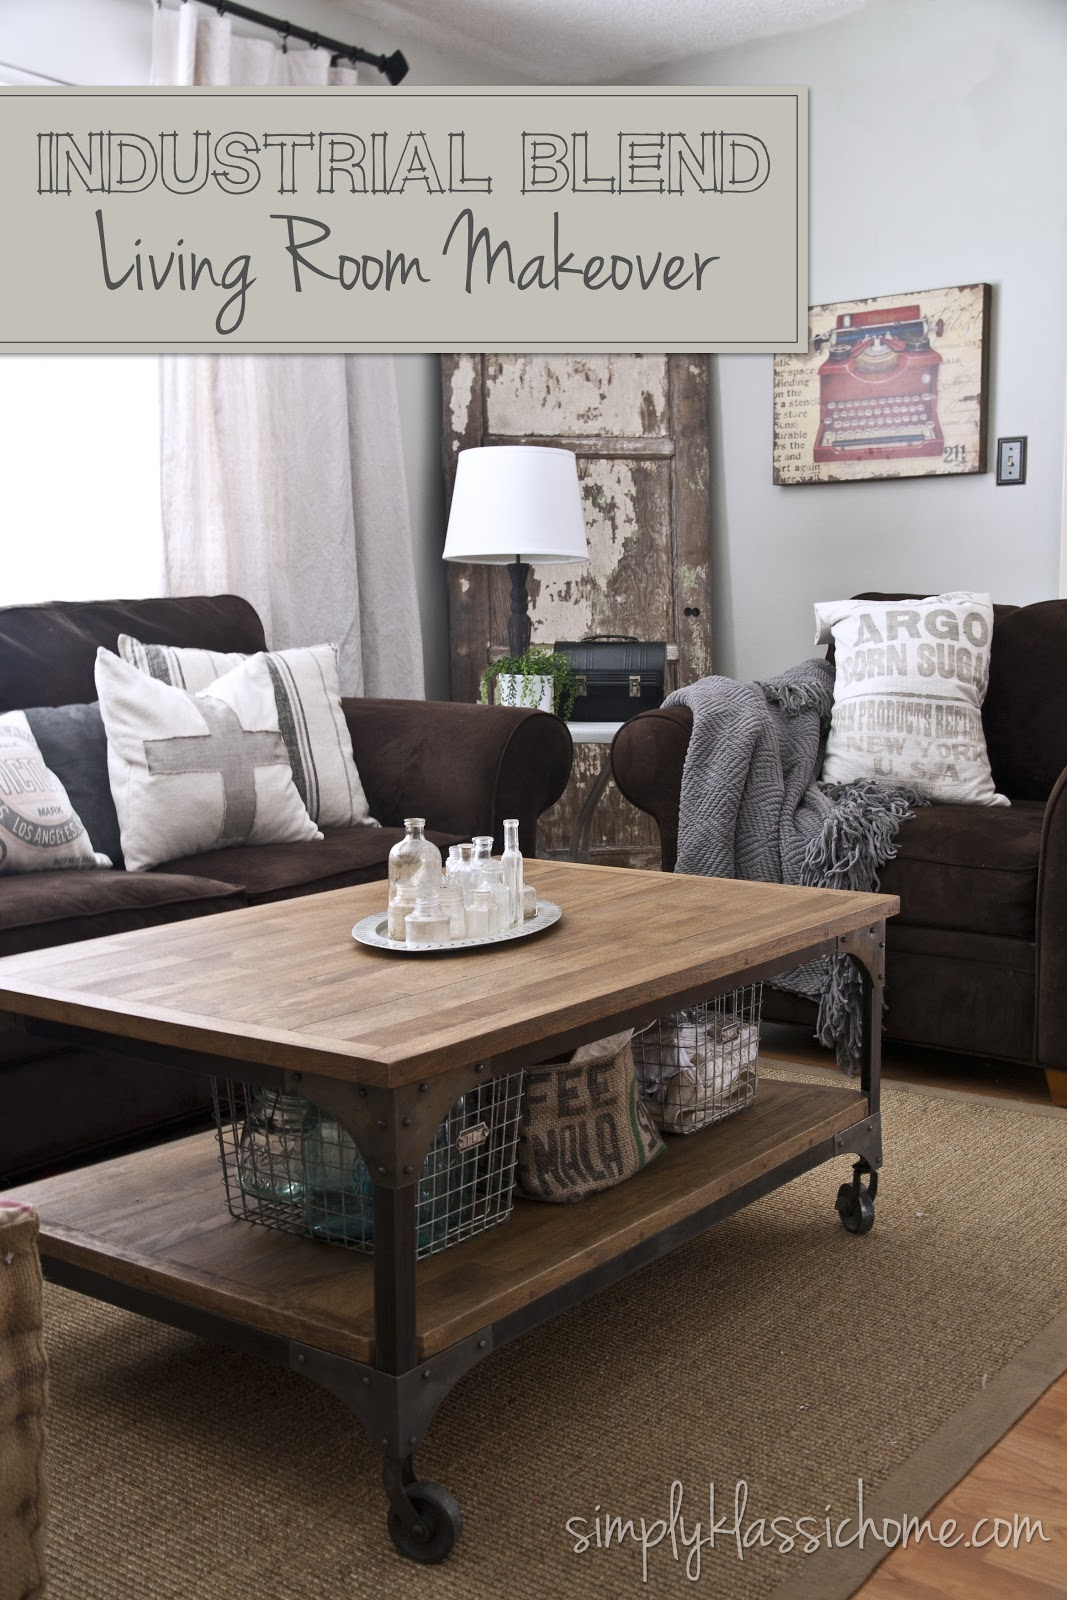 Industrial blend living room makeover reveal yellow for Room makeover